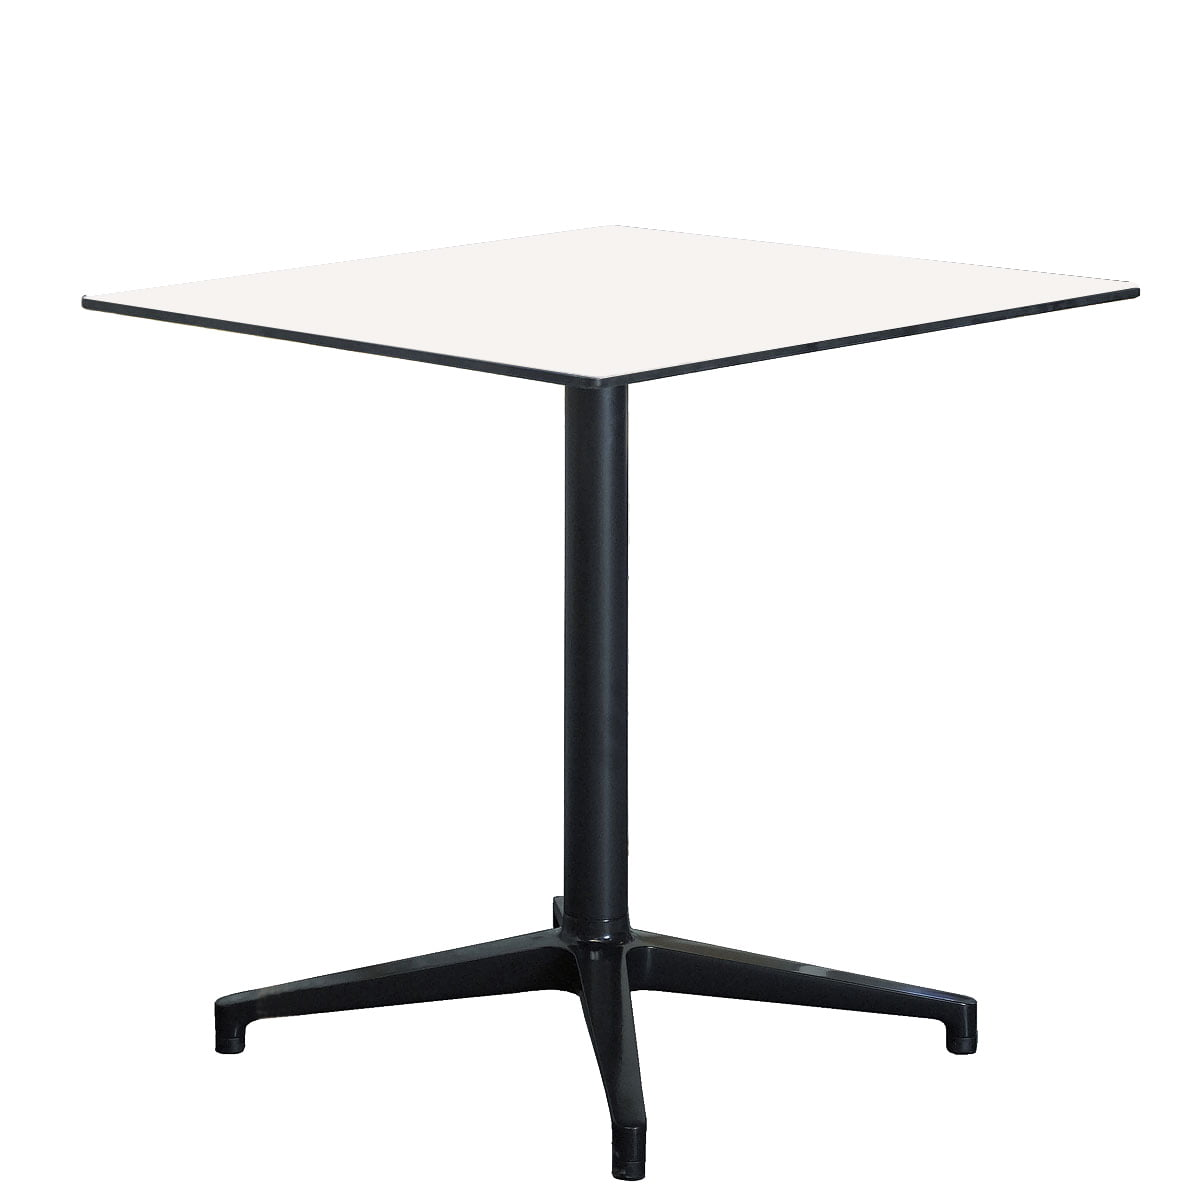 vitra bistro table outdoor rectangulaire 79 6 x 64 cm blanc noir